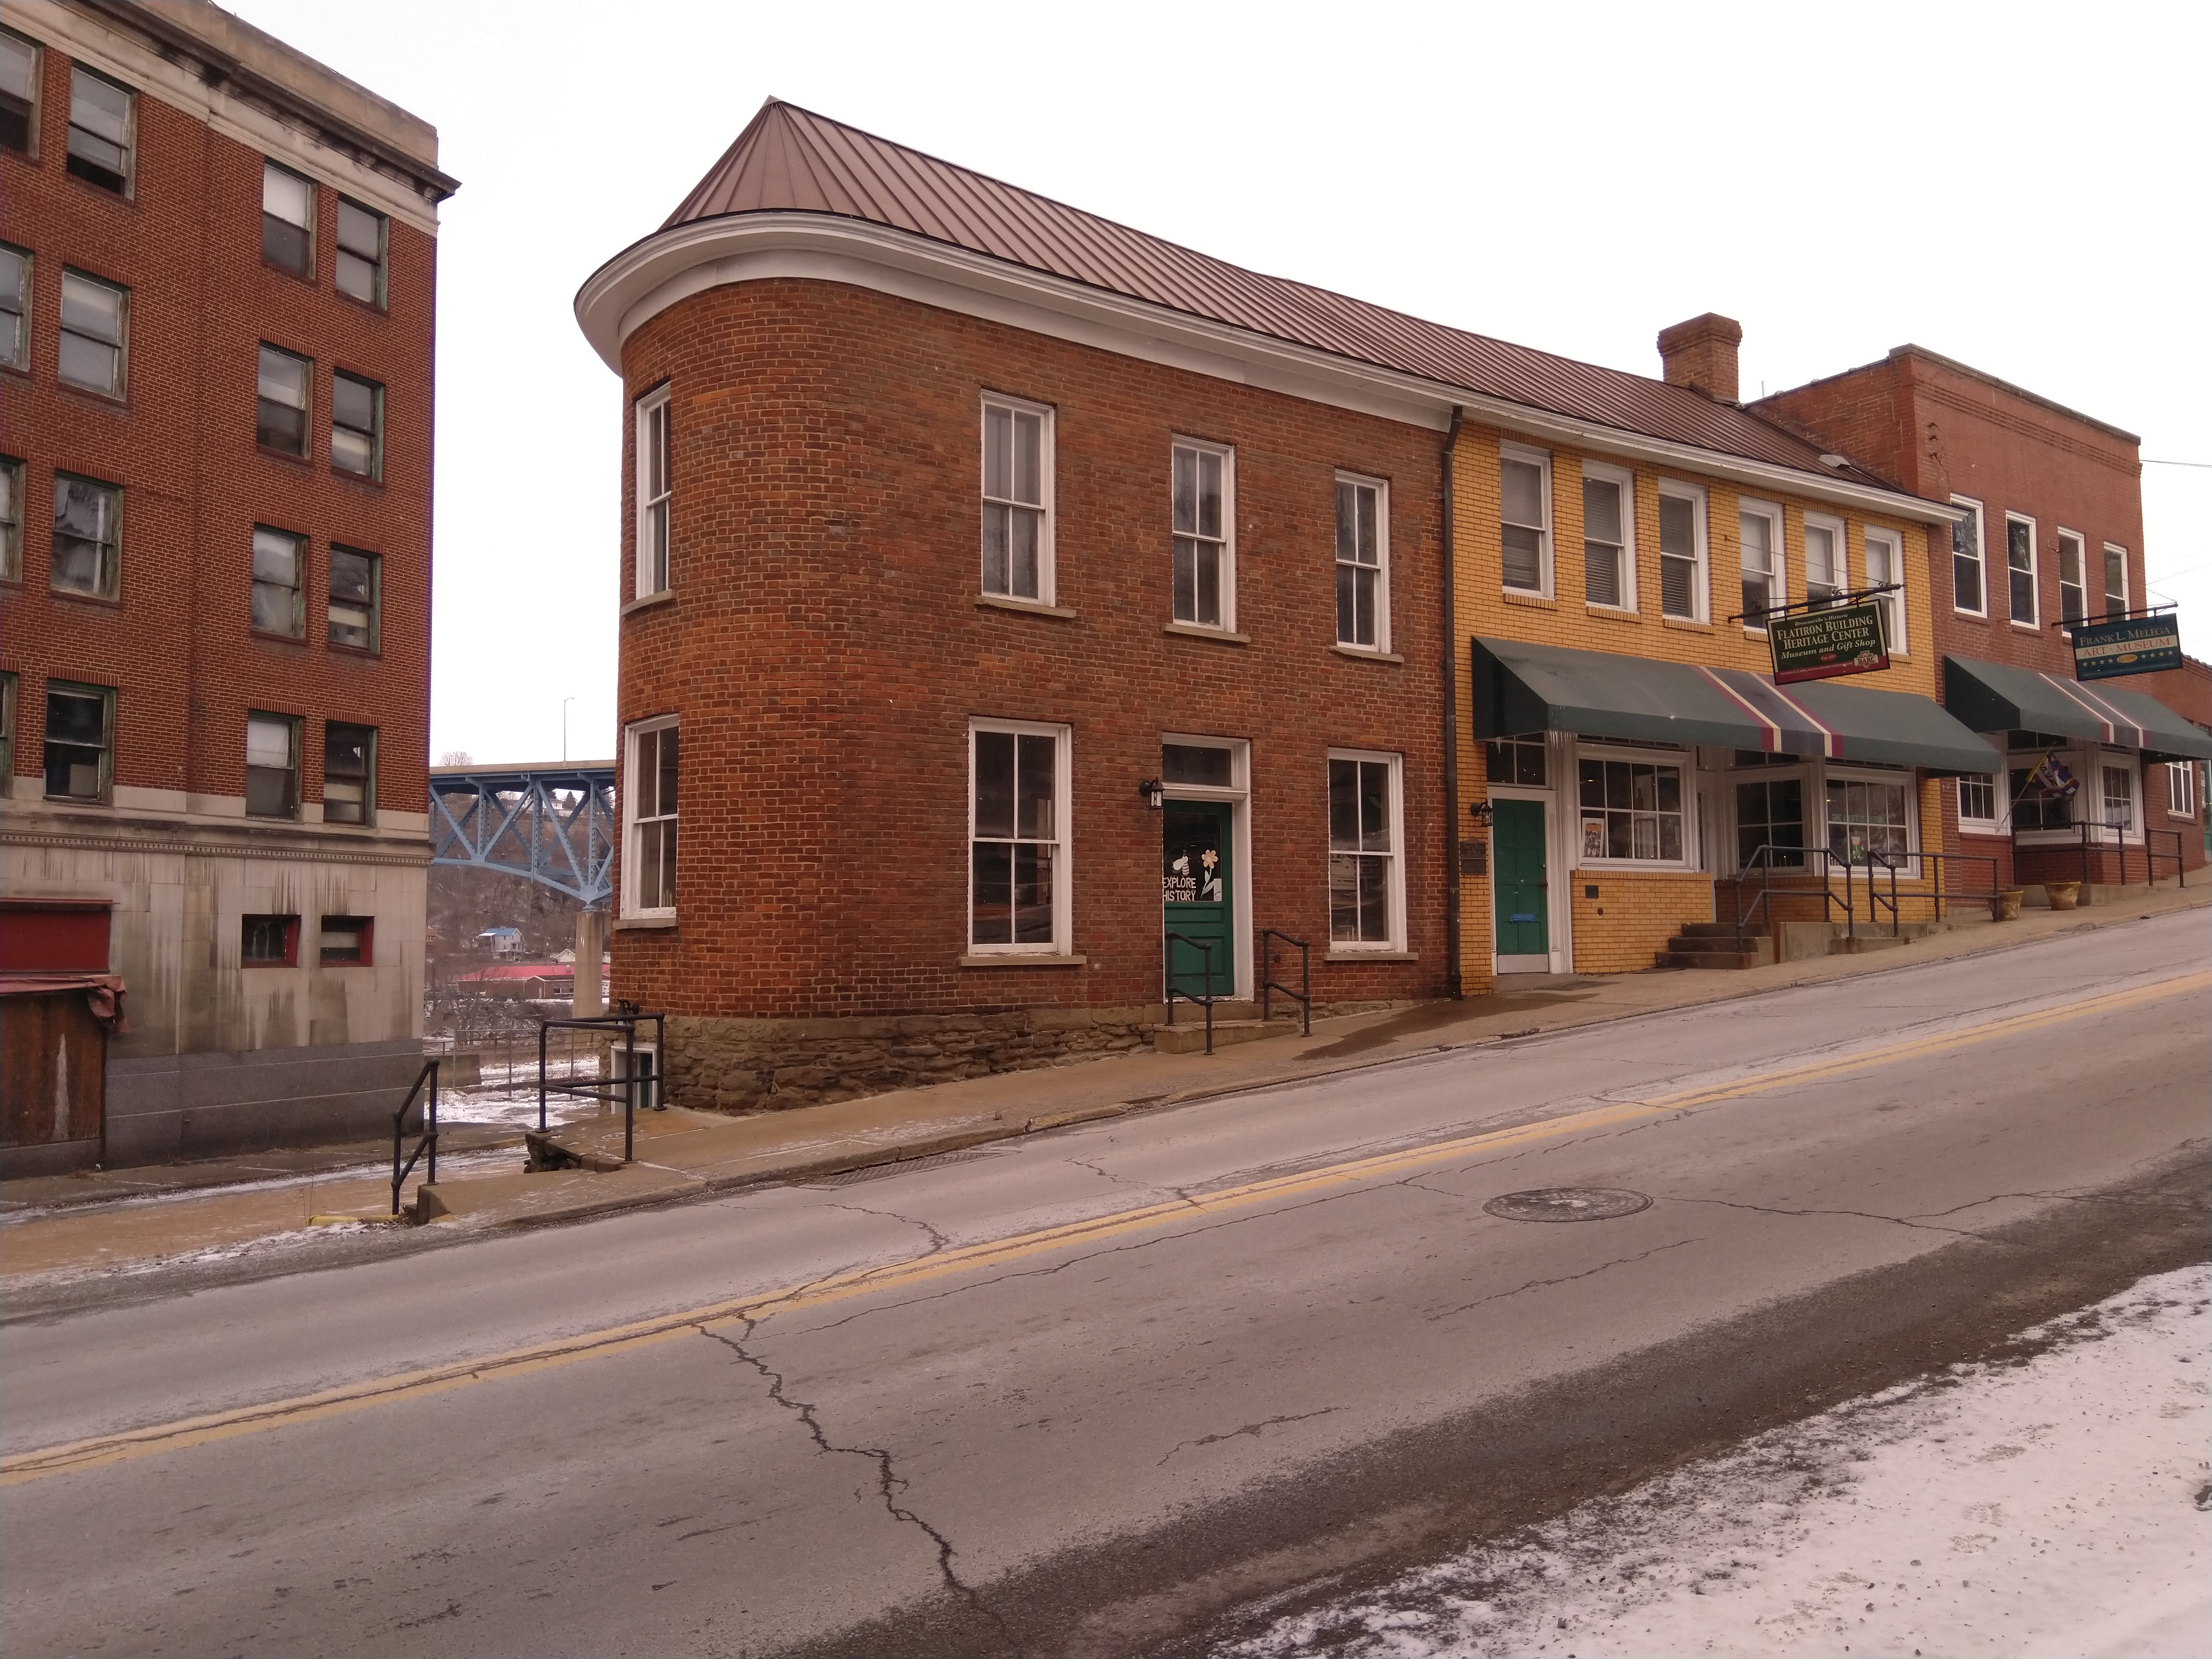 A view of the historic Flatiron Building, Brownsville, PA